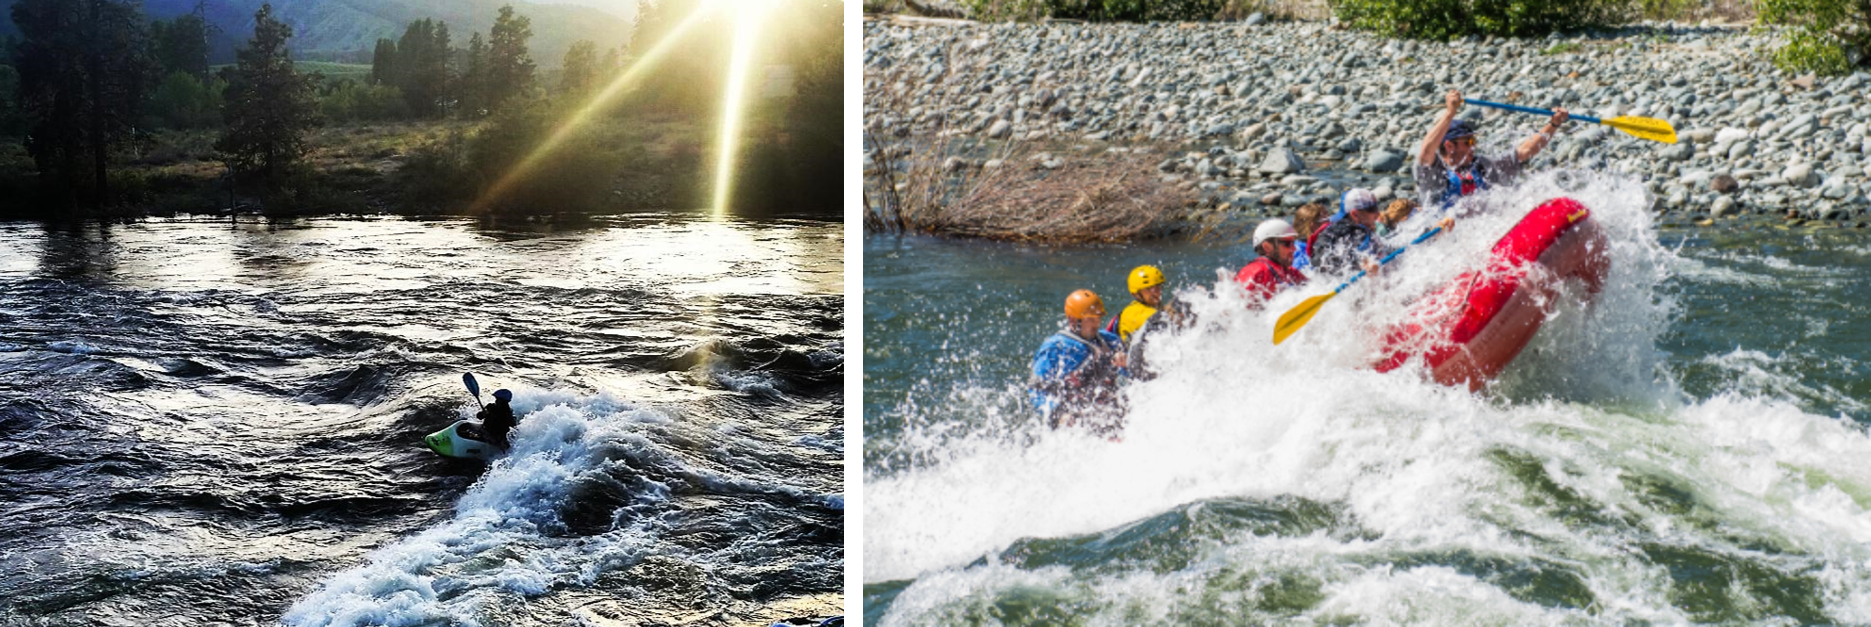 image on the left is a kayaker on the river at sunset and image on the right is a group of people in a red raft going through whitewater